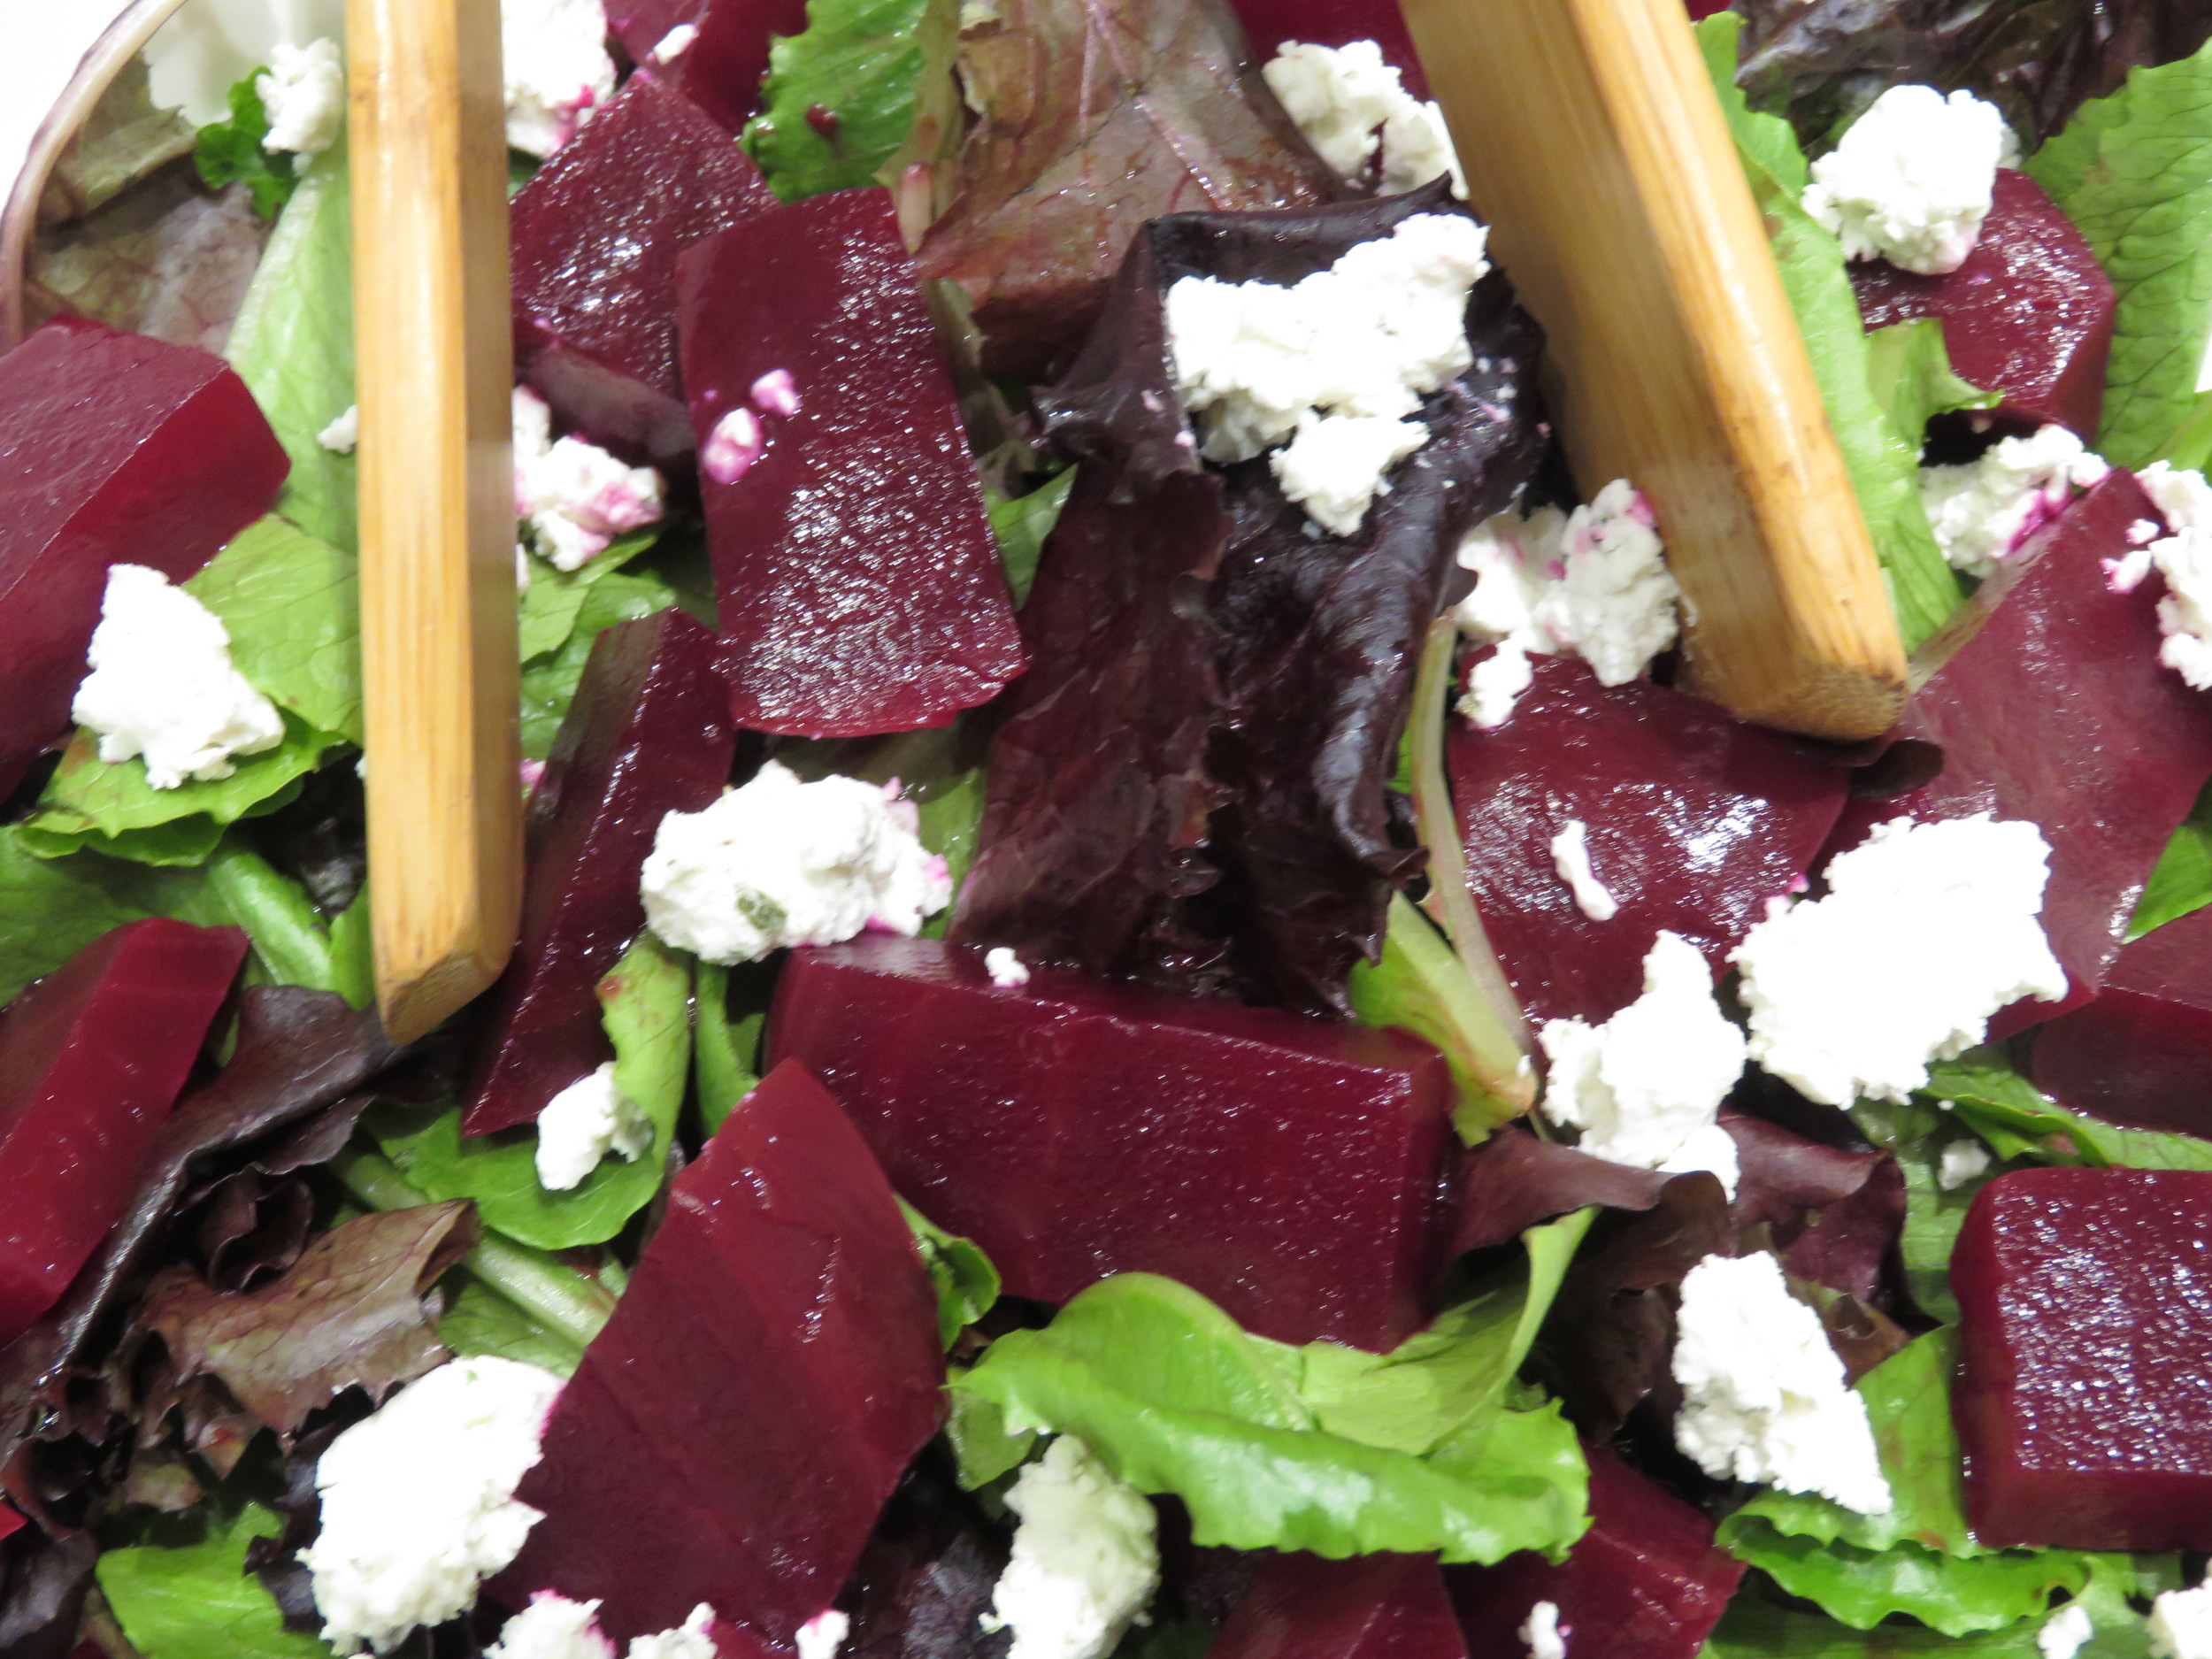 Look at all those yummy beet and goat cheese pieces!